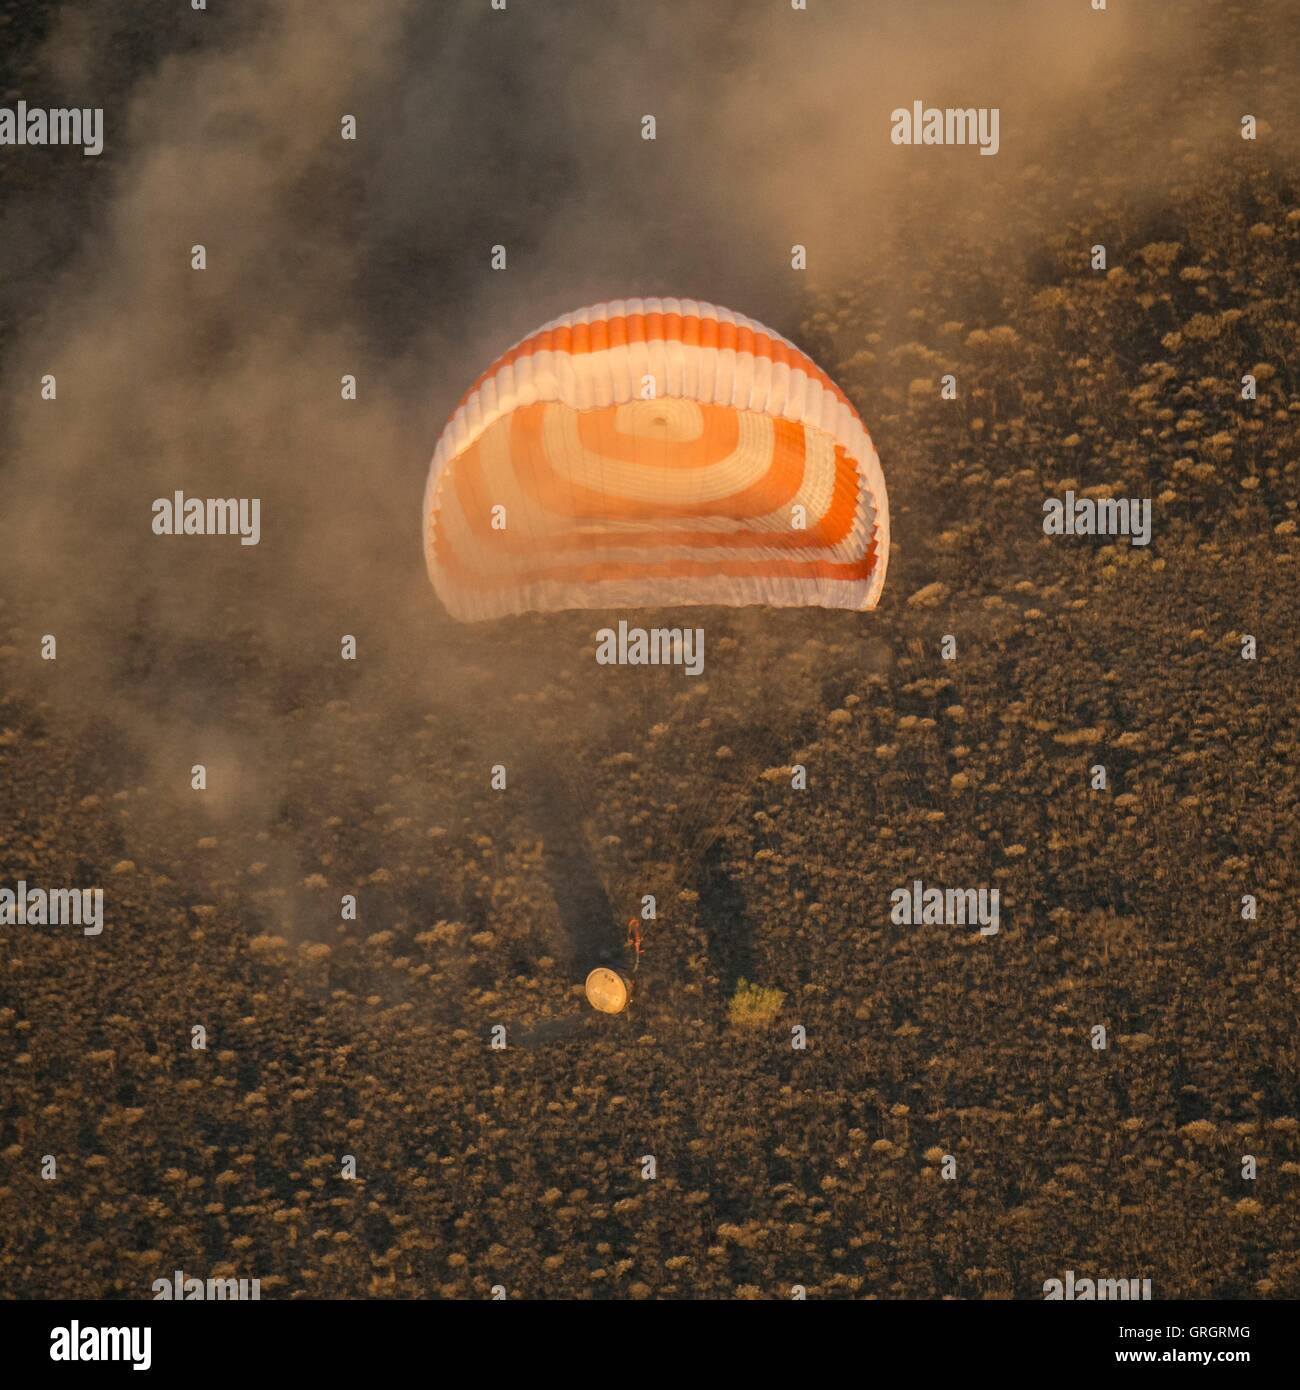 International Space Station crew from Expedition 48 touches down aboard the Russian Soyuz TMA-20M spacecraft to - Stock Image